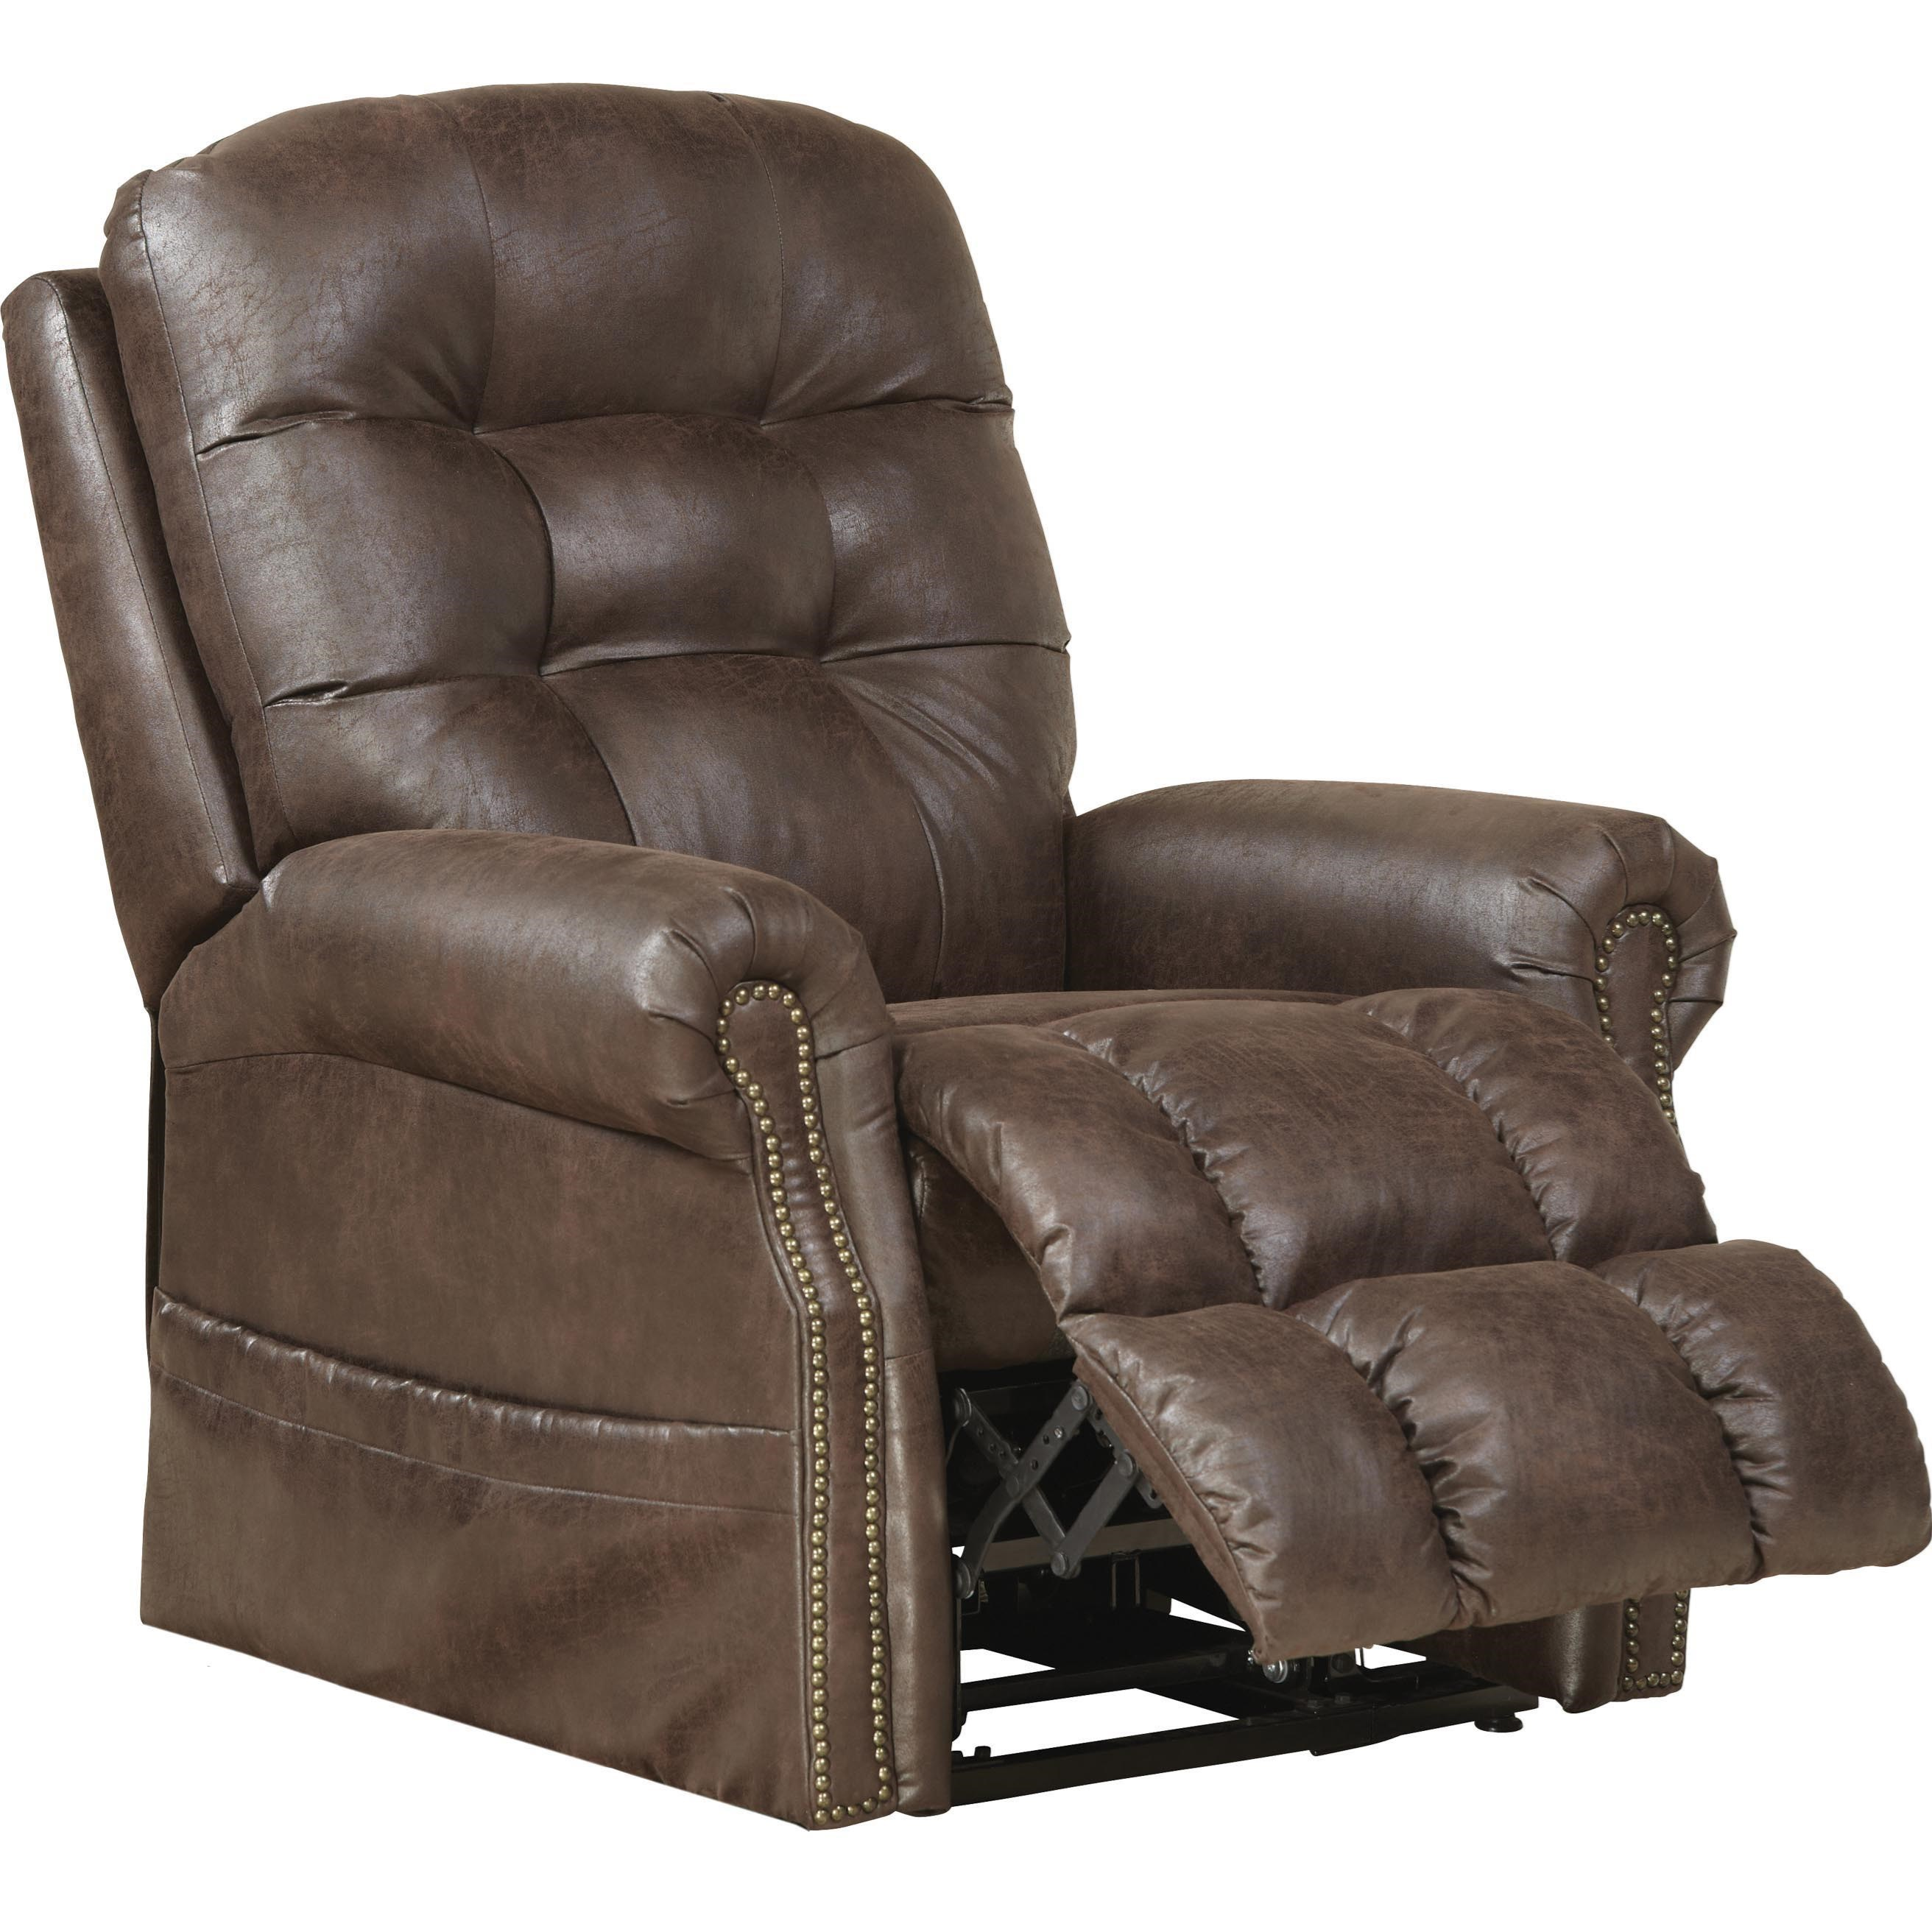 Catnapper Chair Catnapper Motion Chairs And Recliners Ramsey Lift Chair